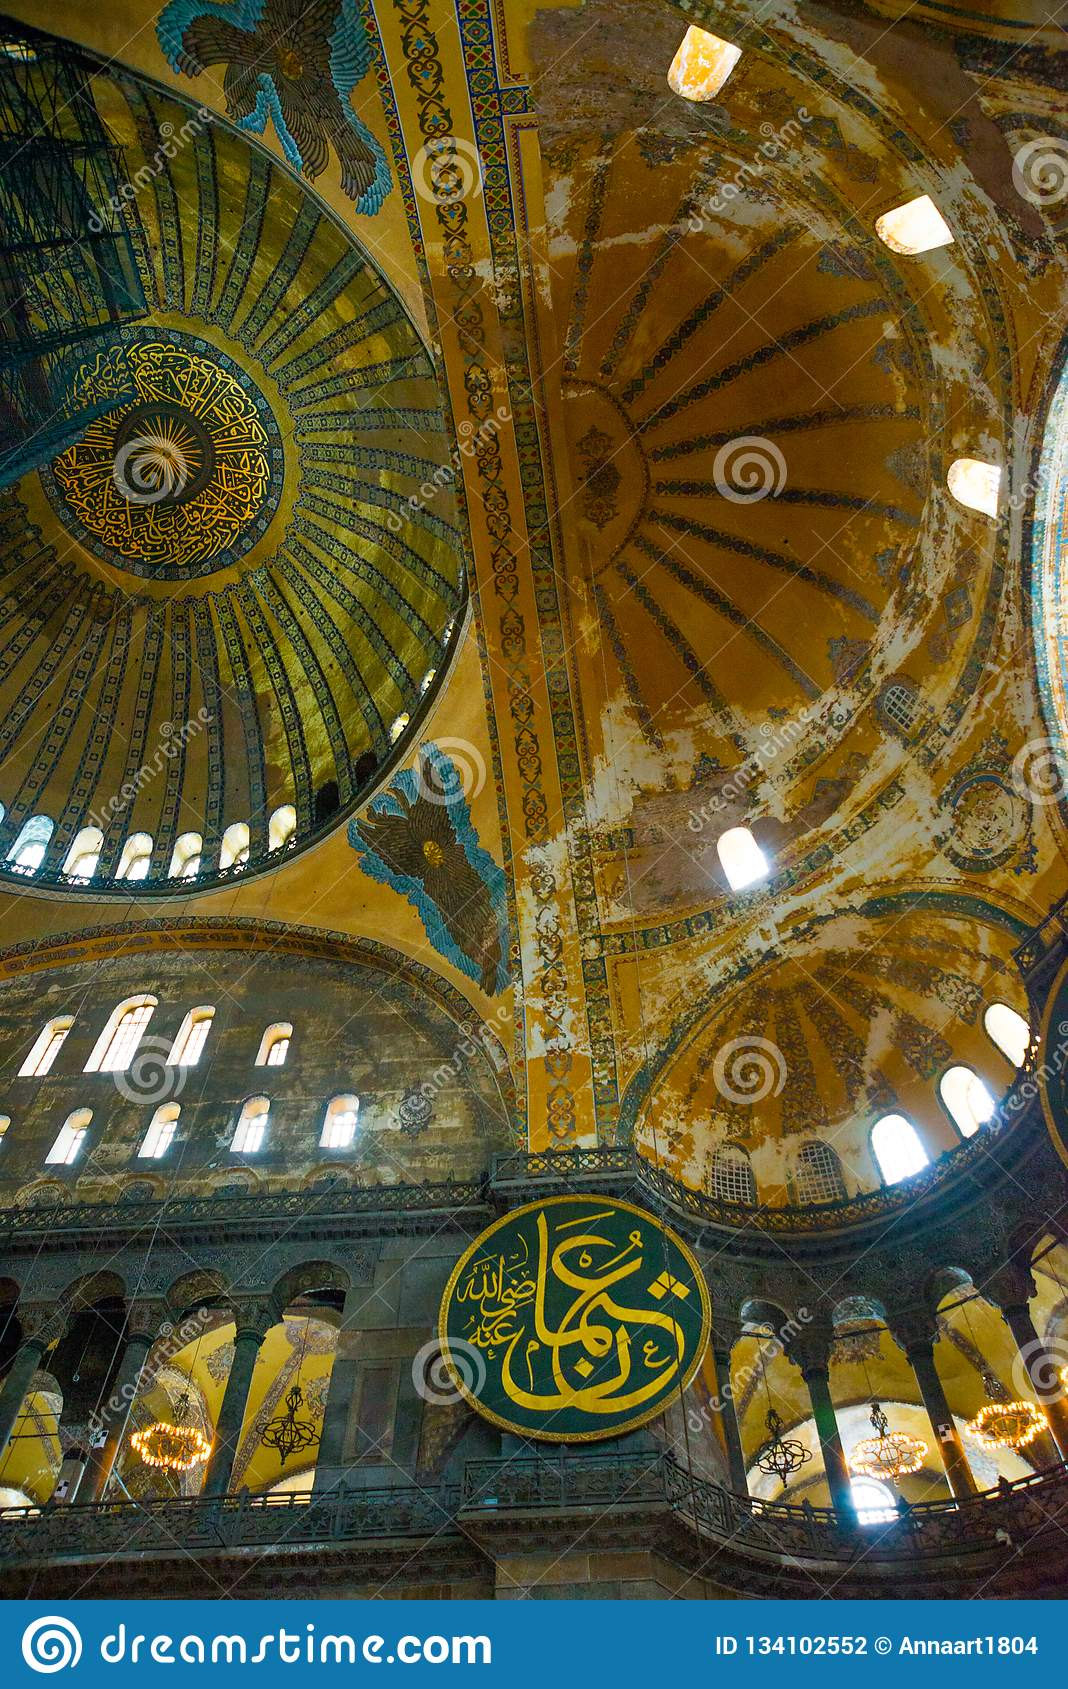 ISTANBUL, TURKEY: Hagia Sophia interior. Hagia Sophia is the greatest monument of Byzantine Culture